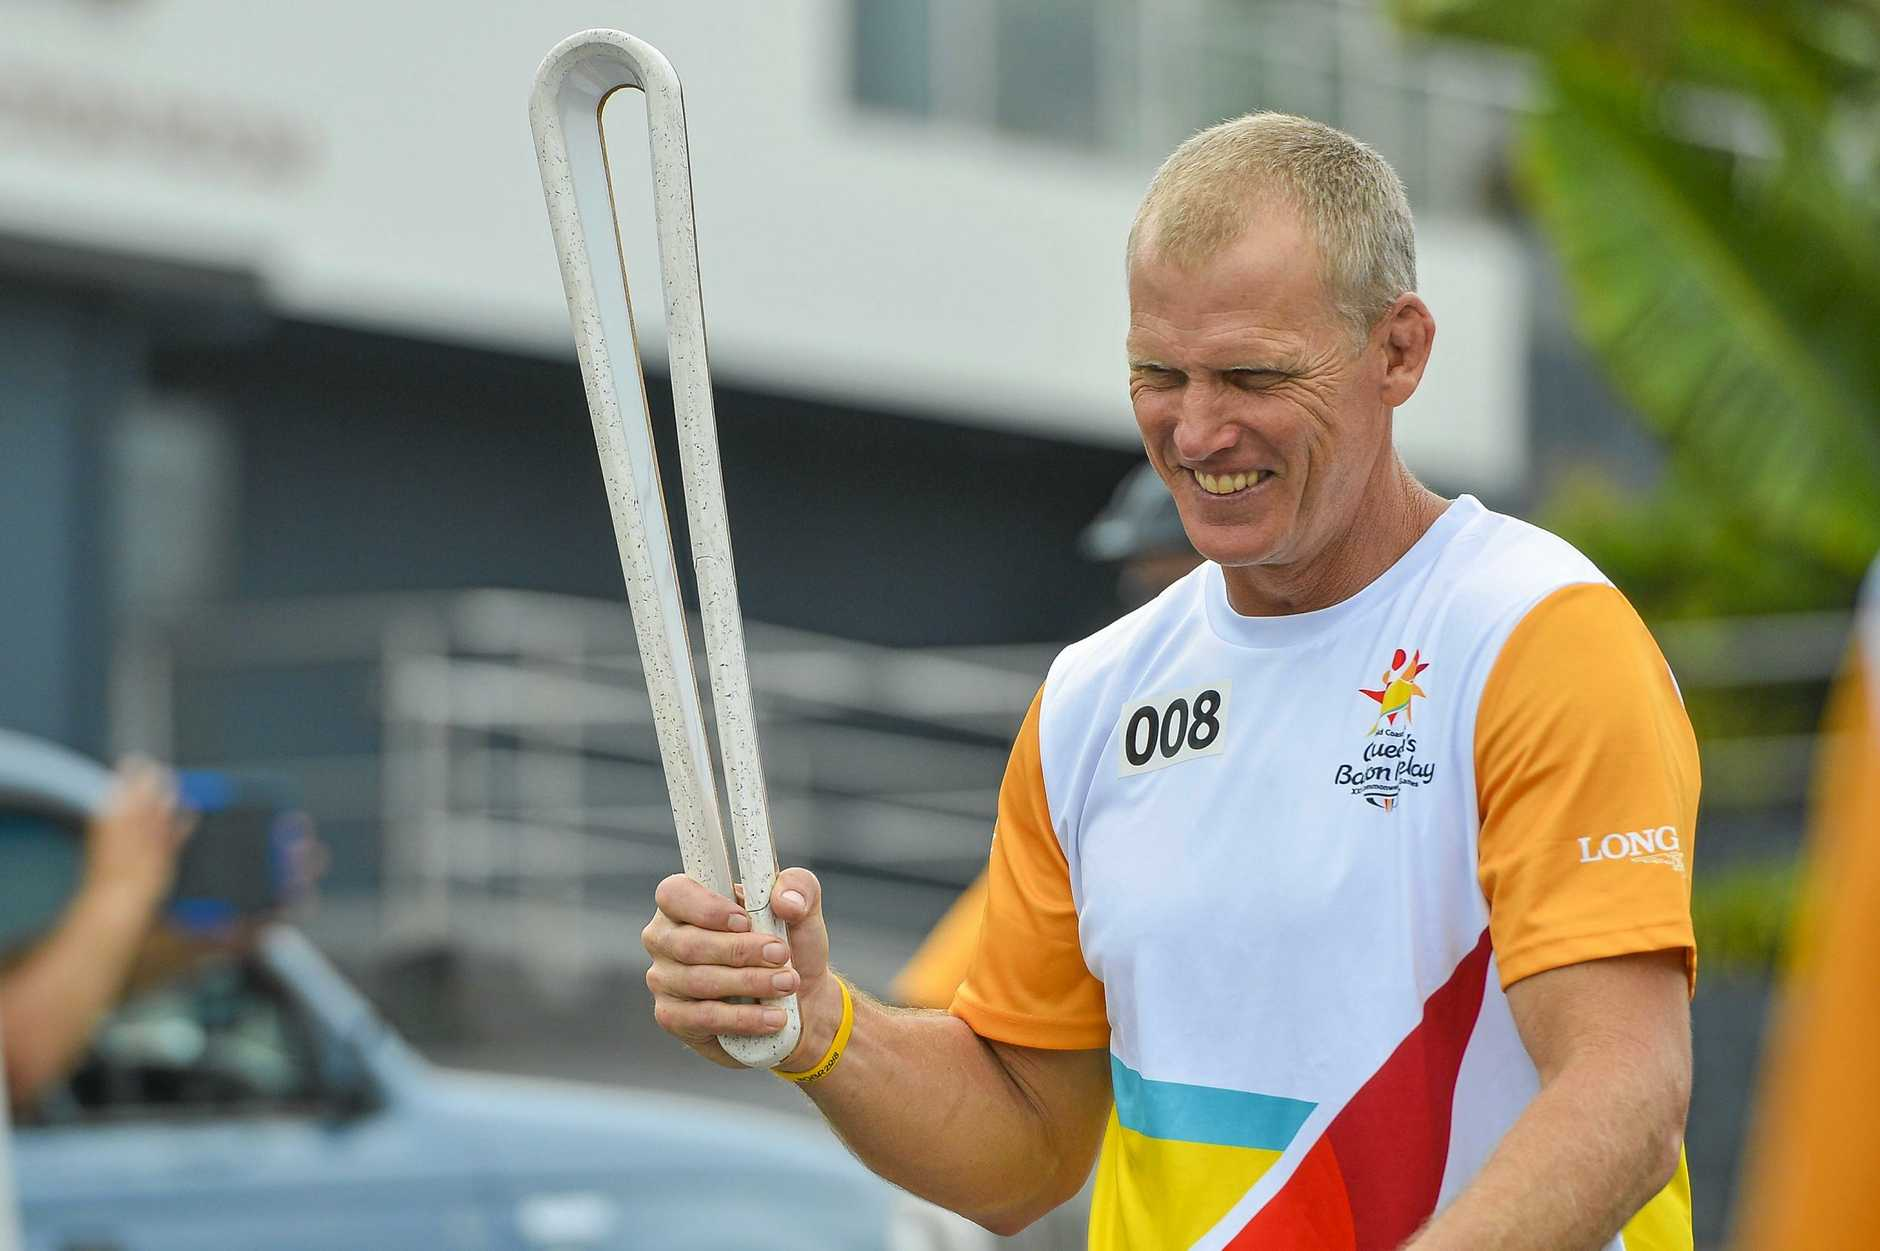 Gary Larson runs the Queen's Baton during the Queen's Baton Relay in Gladstone, for the upcoming 21st Commonwealth Games to be held on the Gold Coast in Australia. 24 March, 2018.